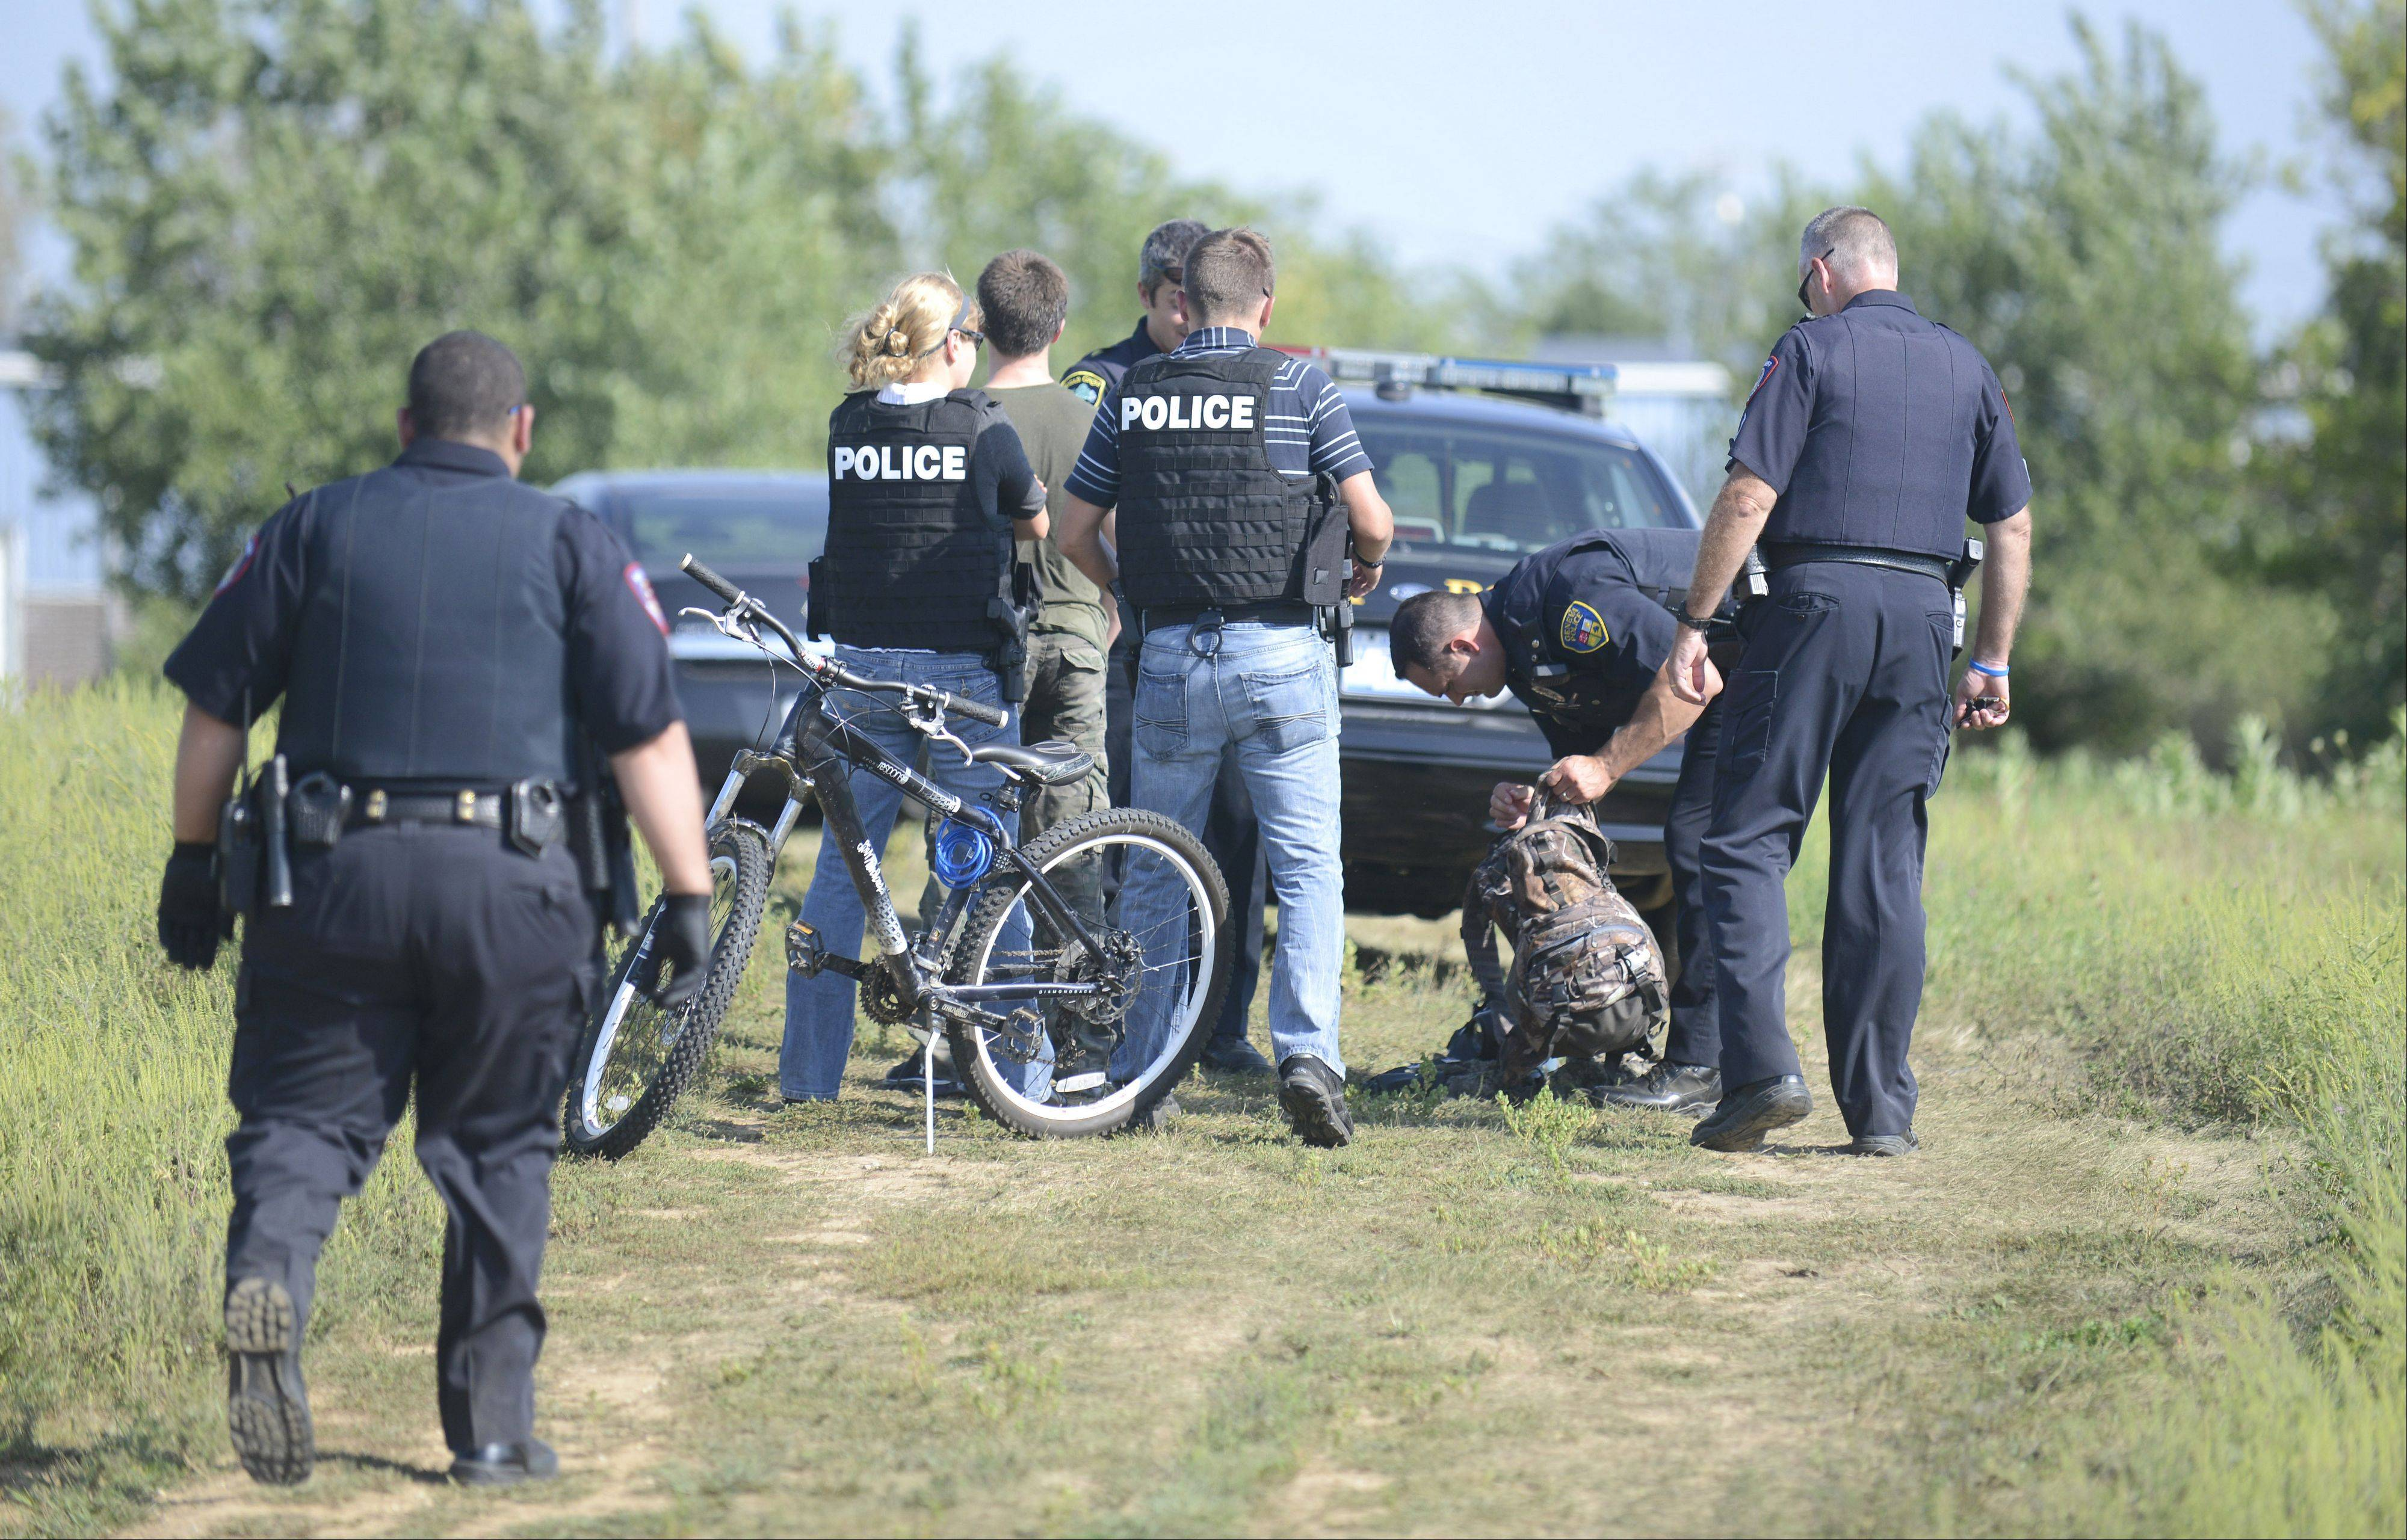 Kane County Sheriff�s Department officers check the contents of a backpack Friday near Kaneland John Stewart Elementary School in Elburn after three 13-year-old boys were taken into custody following reports of suspicious activity near the school.